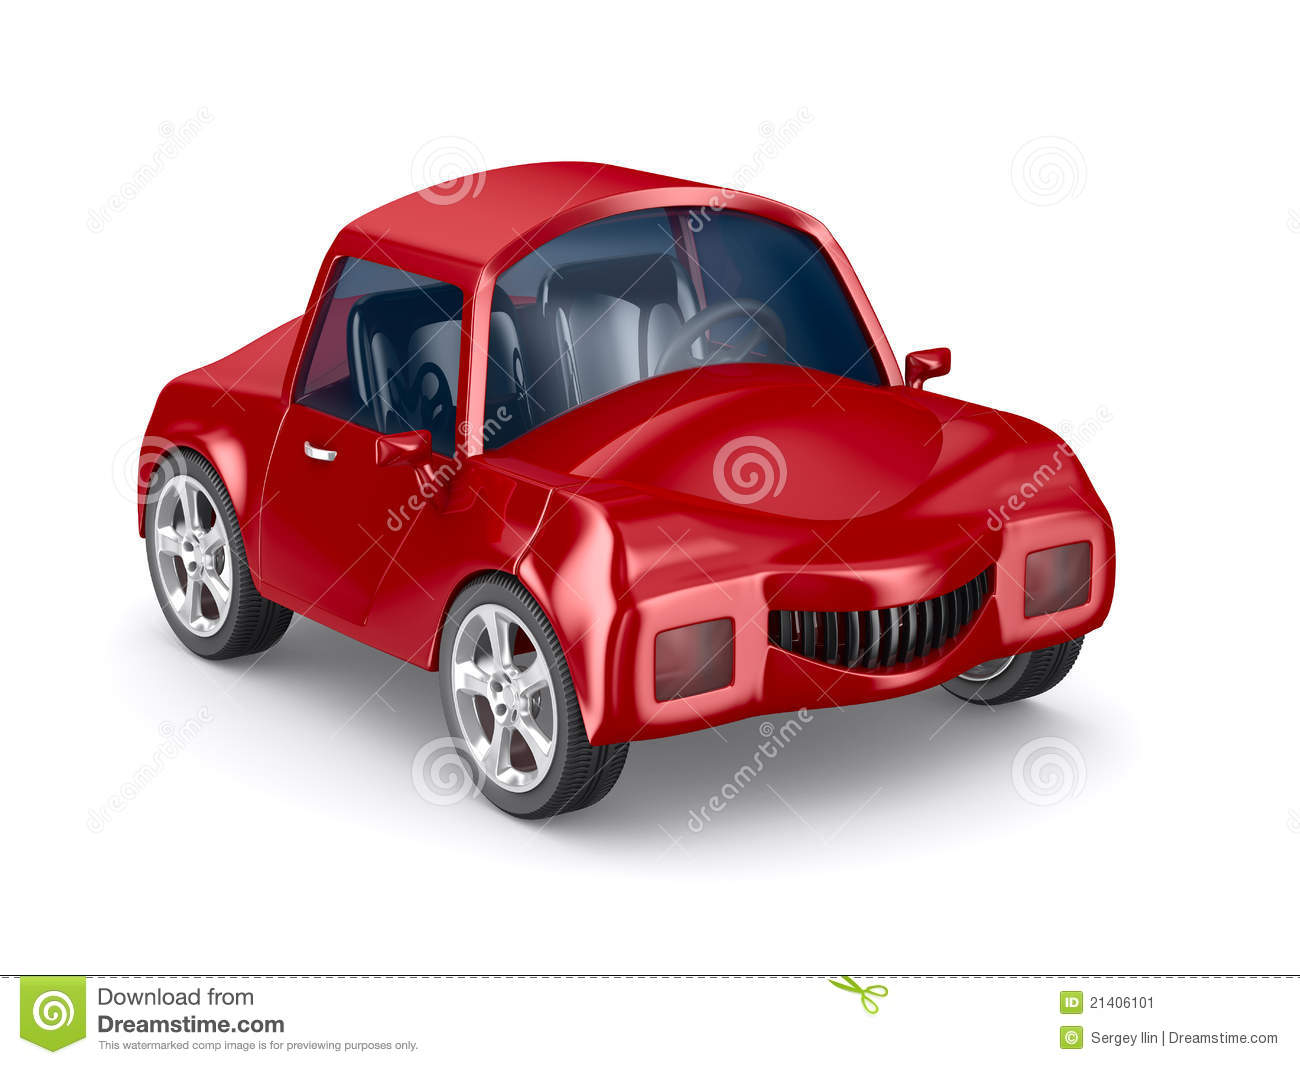 Red Car On White Background Stock Image - Image: 21406101